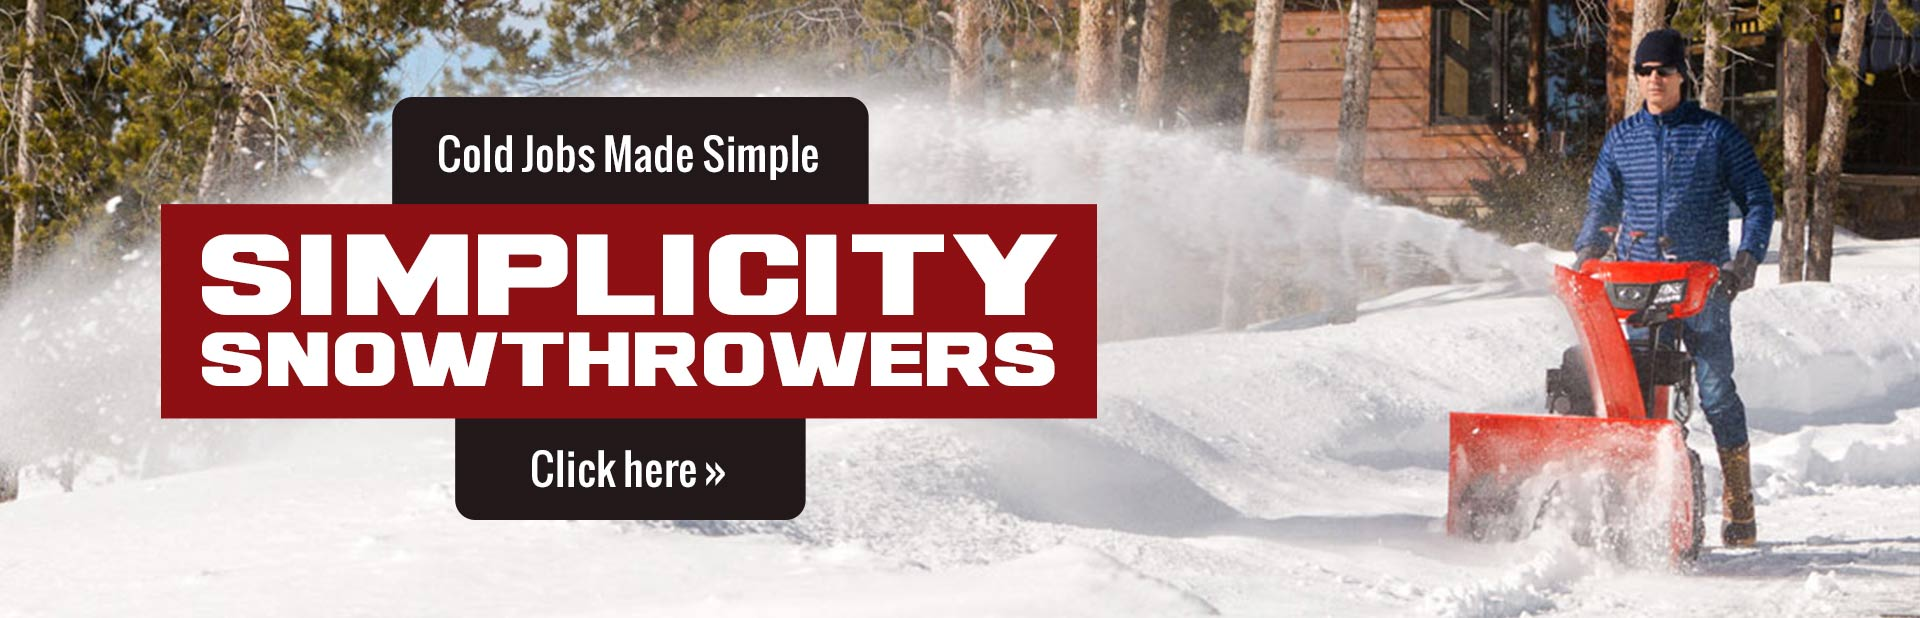 Click here to view our selection of Simplicity snowthrowers!